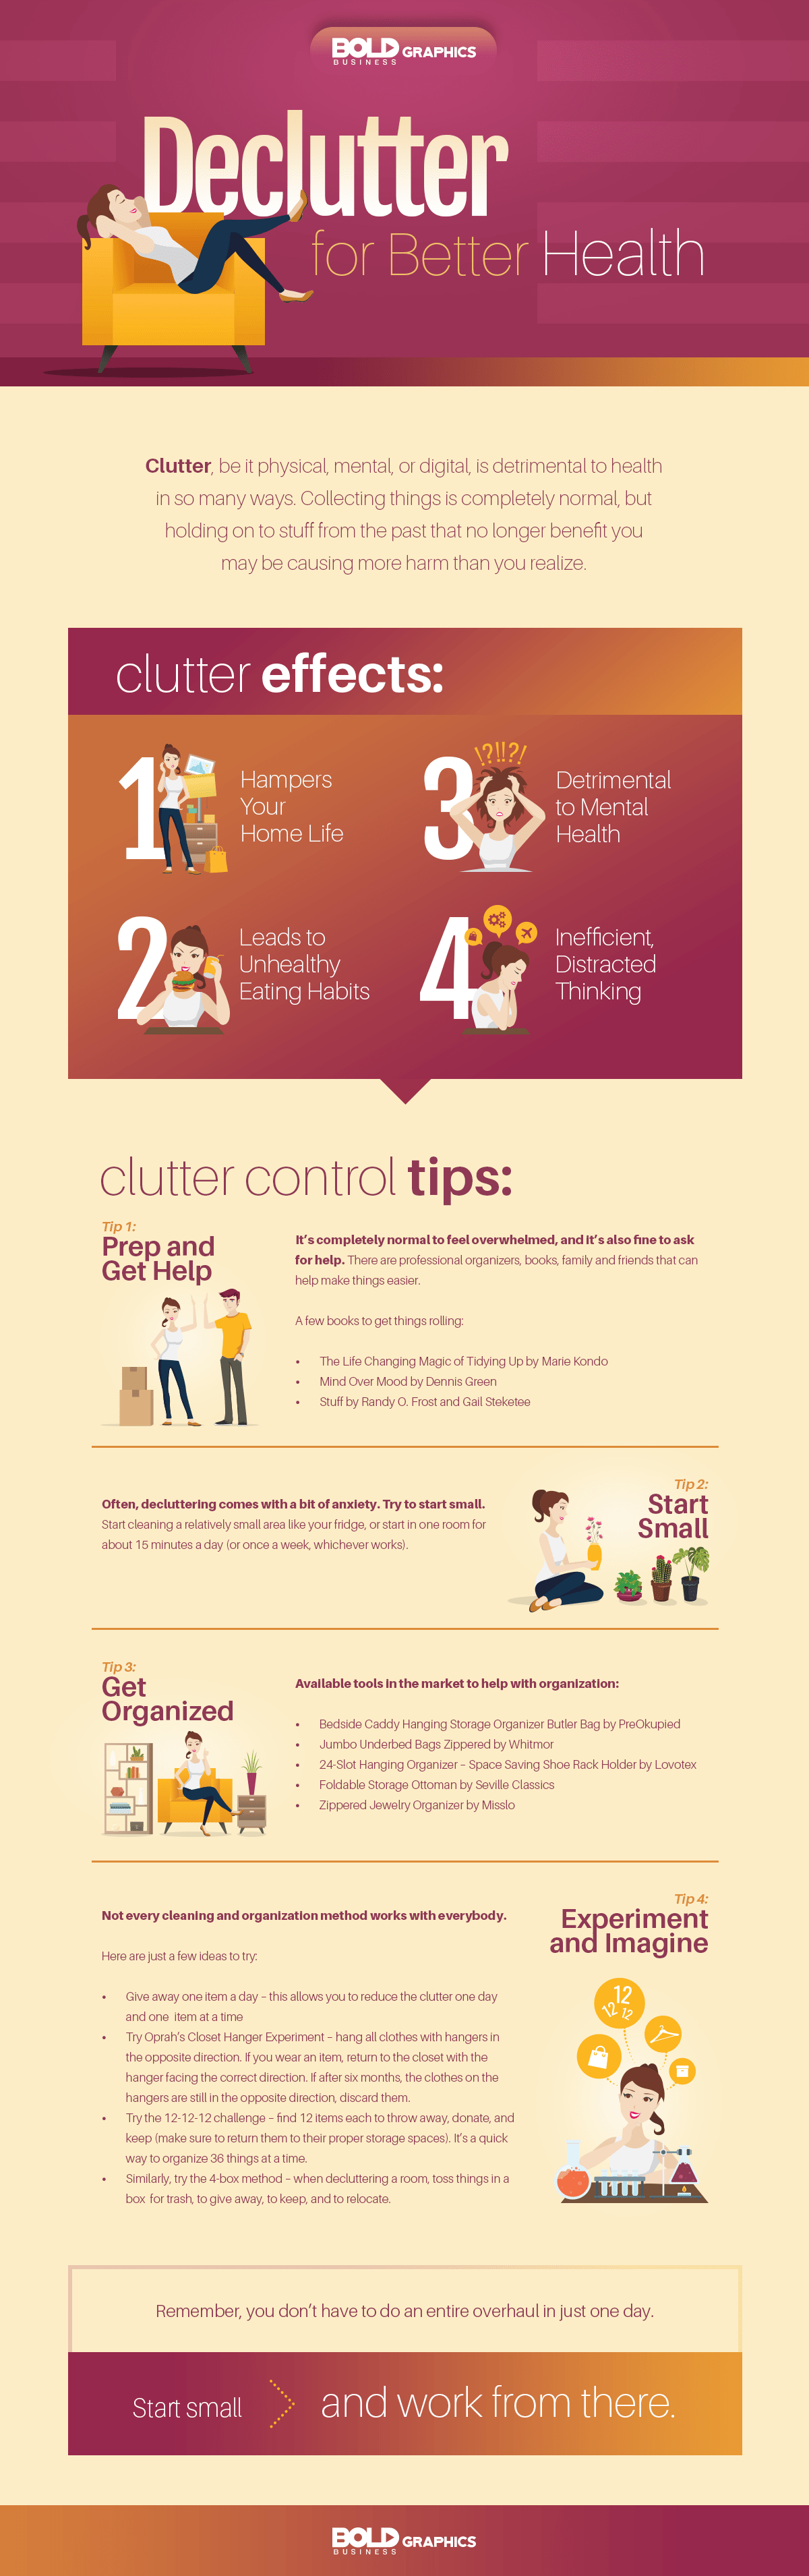 decluttering,declutter definition,declutter checklist,clutter effects,clutter definition,clutter control tips,declutter for better health infographic